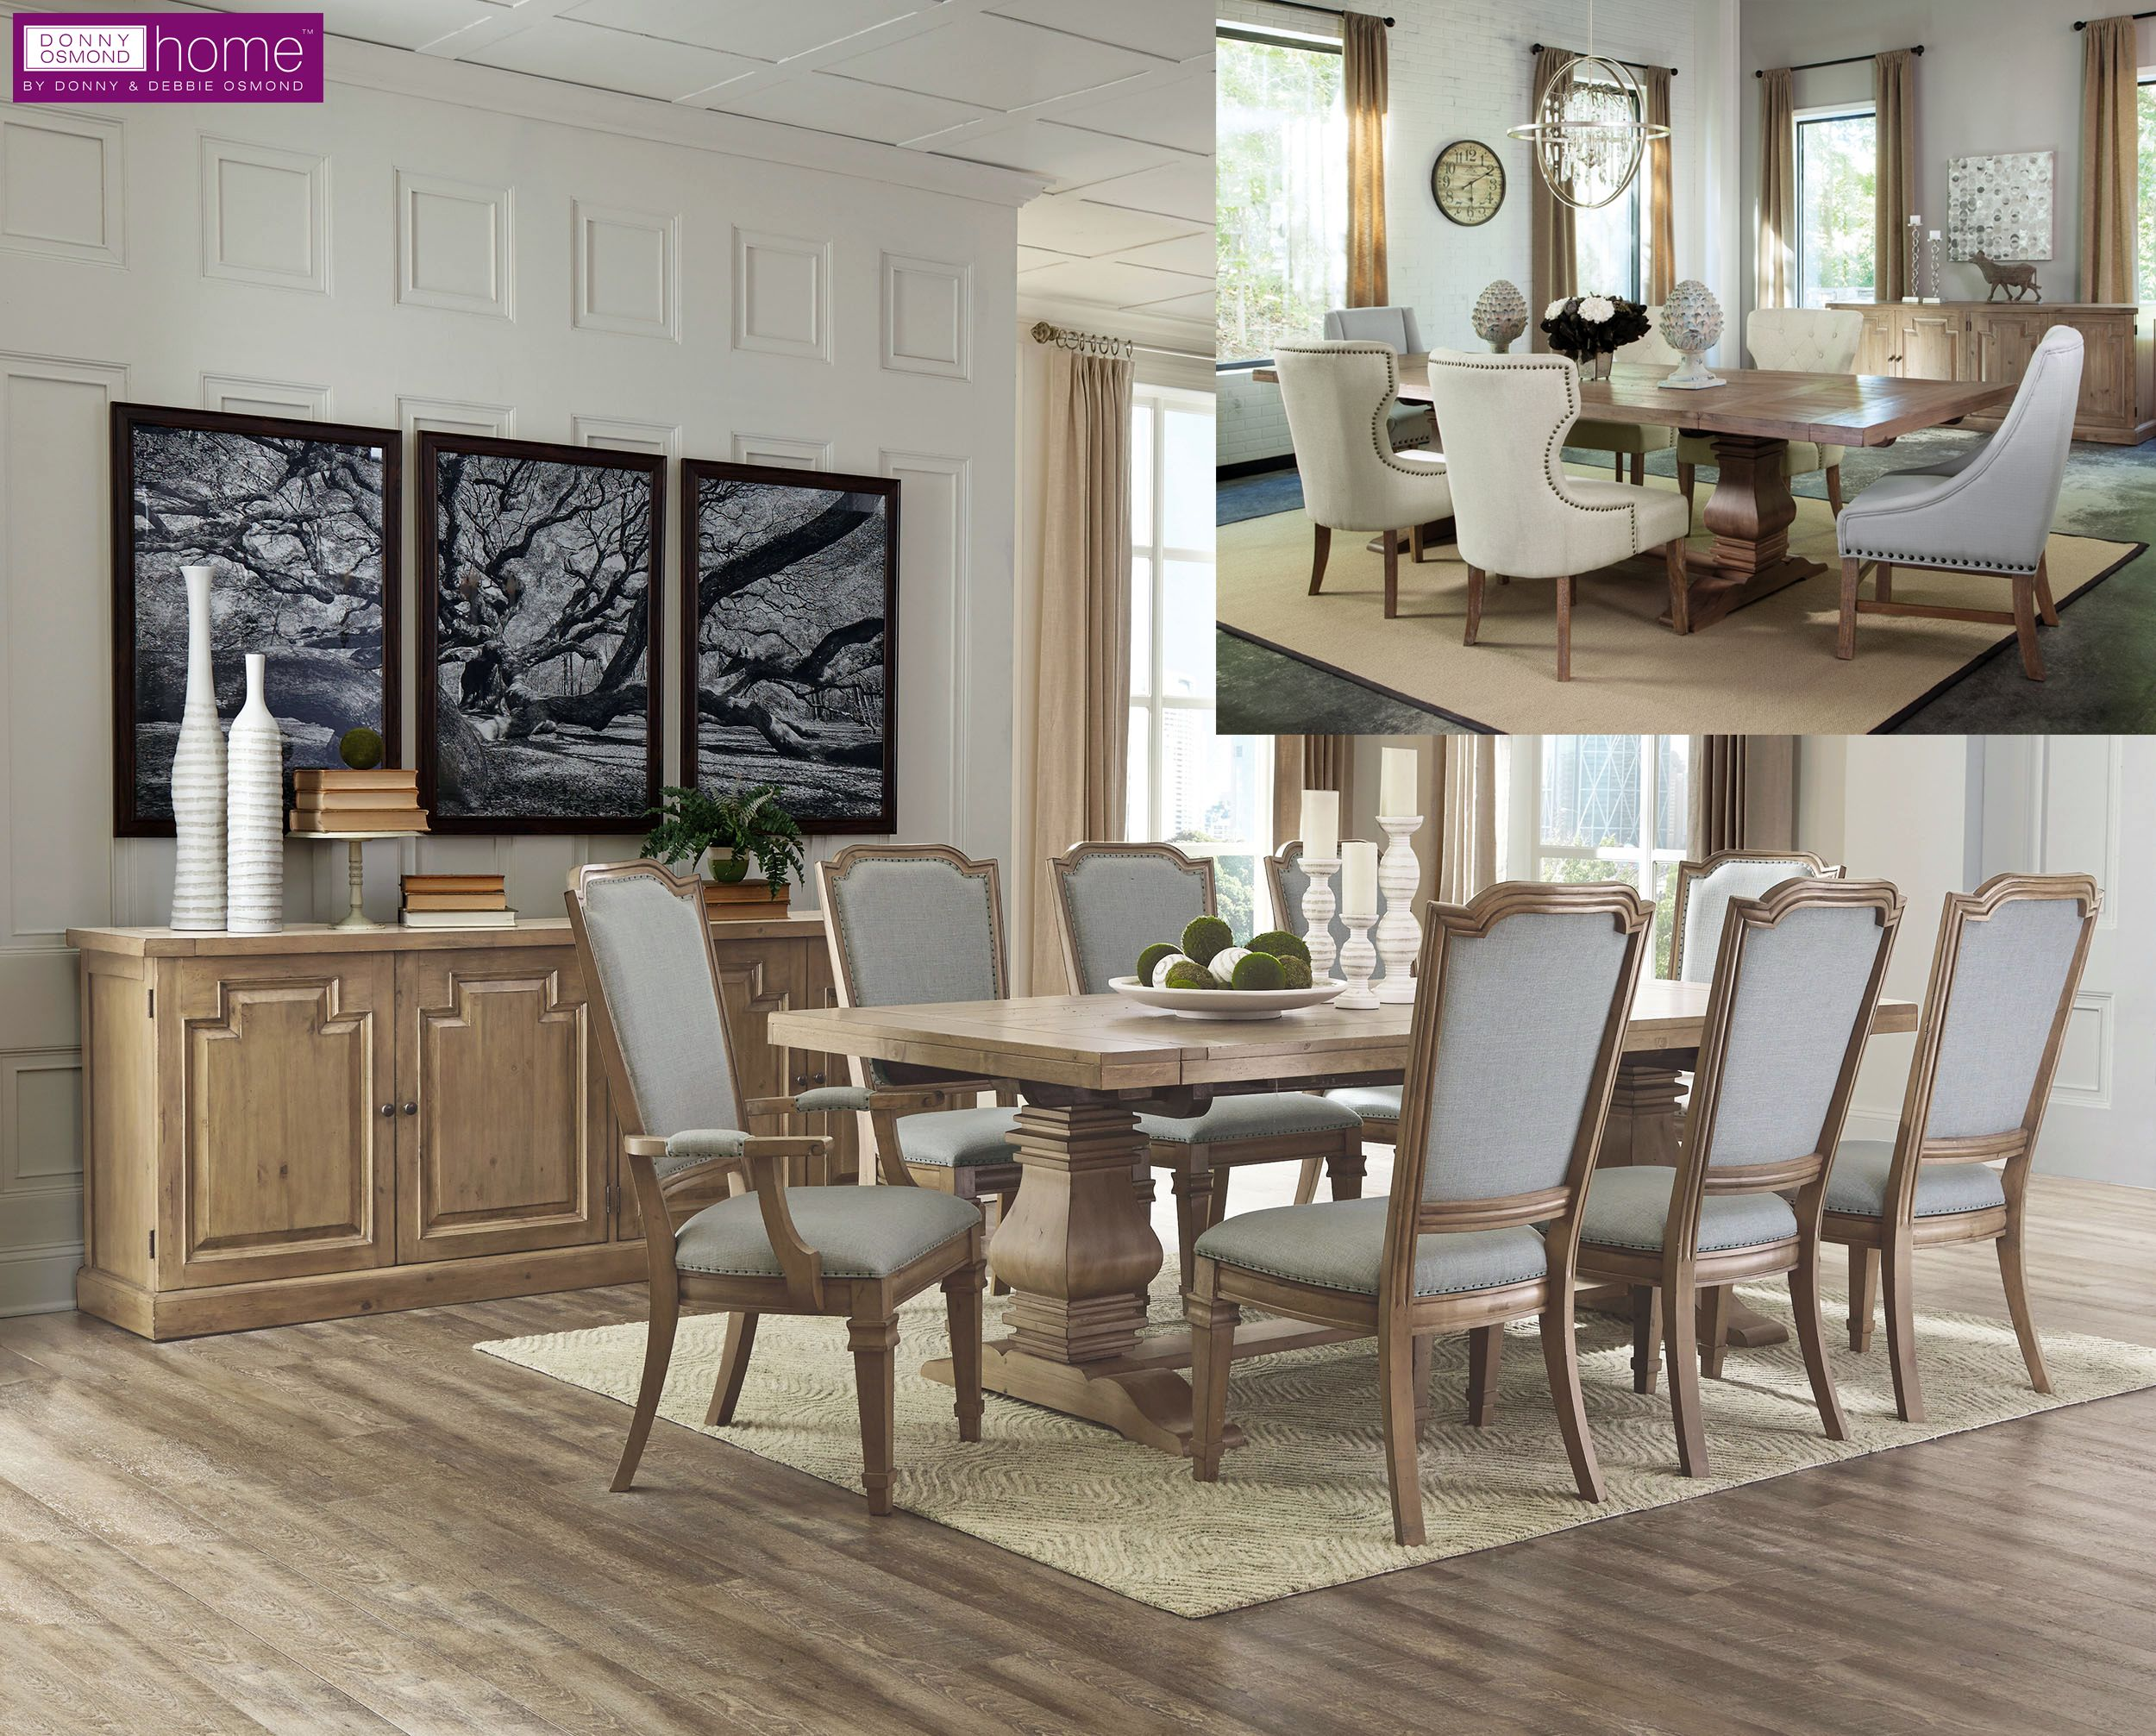 Available With Two Chair Options The Florence Dining Table Is The